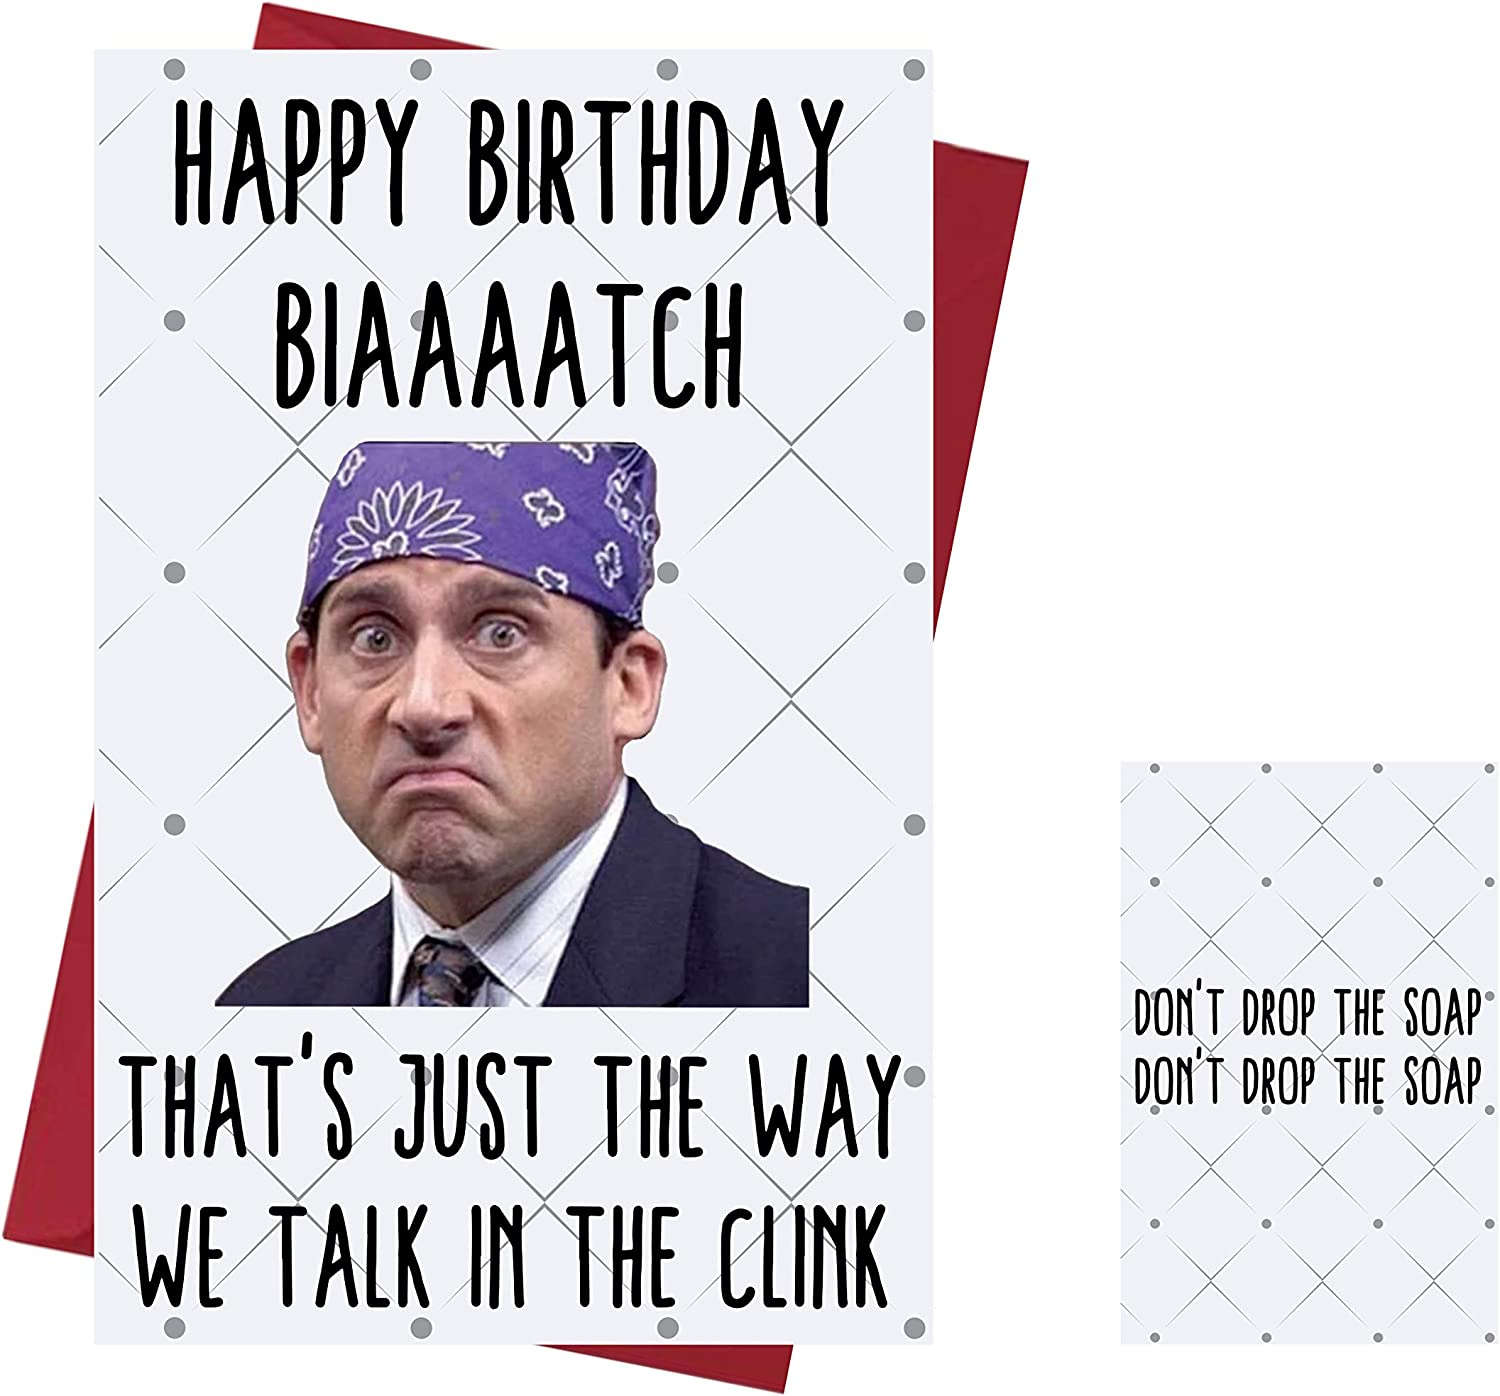 Funny Birthday Card The Office US – Prison Mike – Birthday Card Michael Scott – The Office TV Series – For Friends, Family, Lover, Etc. Who Love The Office TV Series- Birthday Card Prison Mike